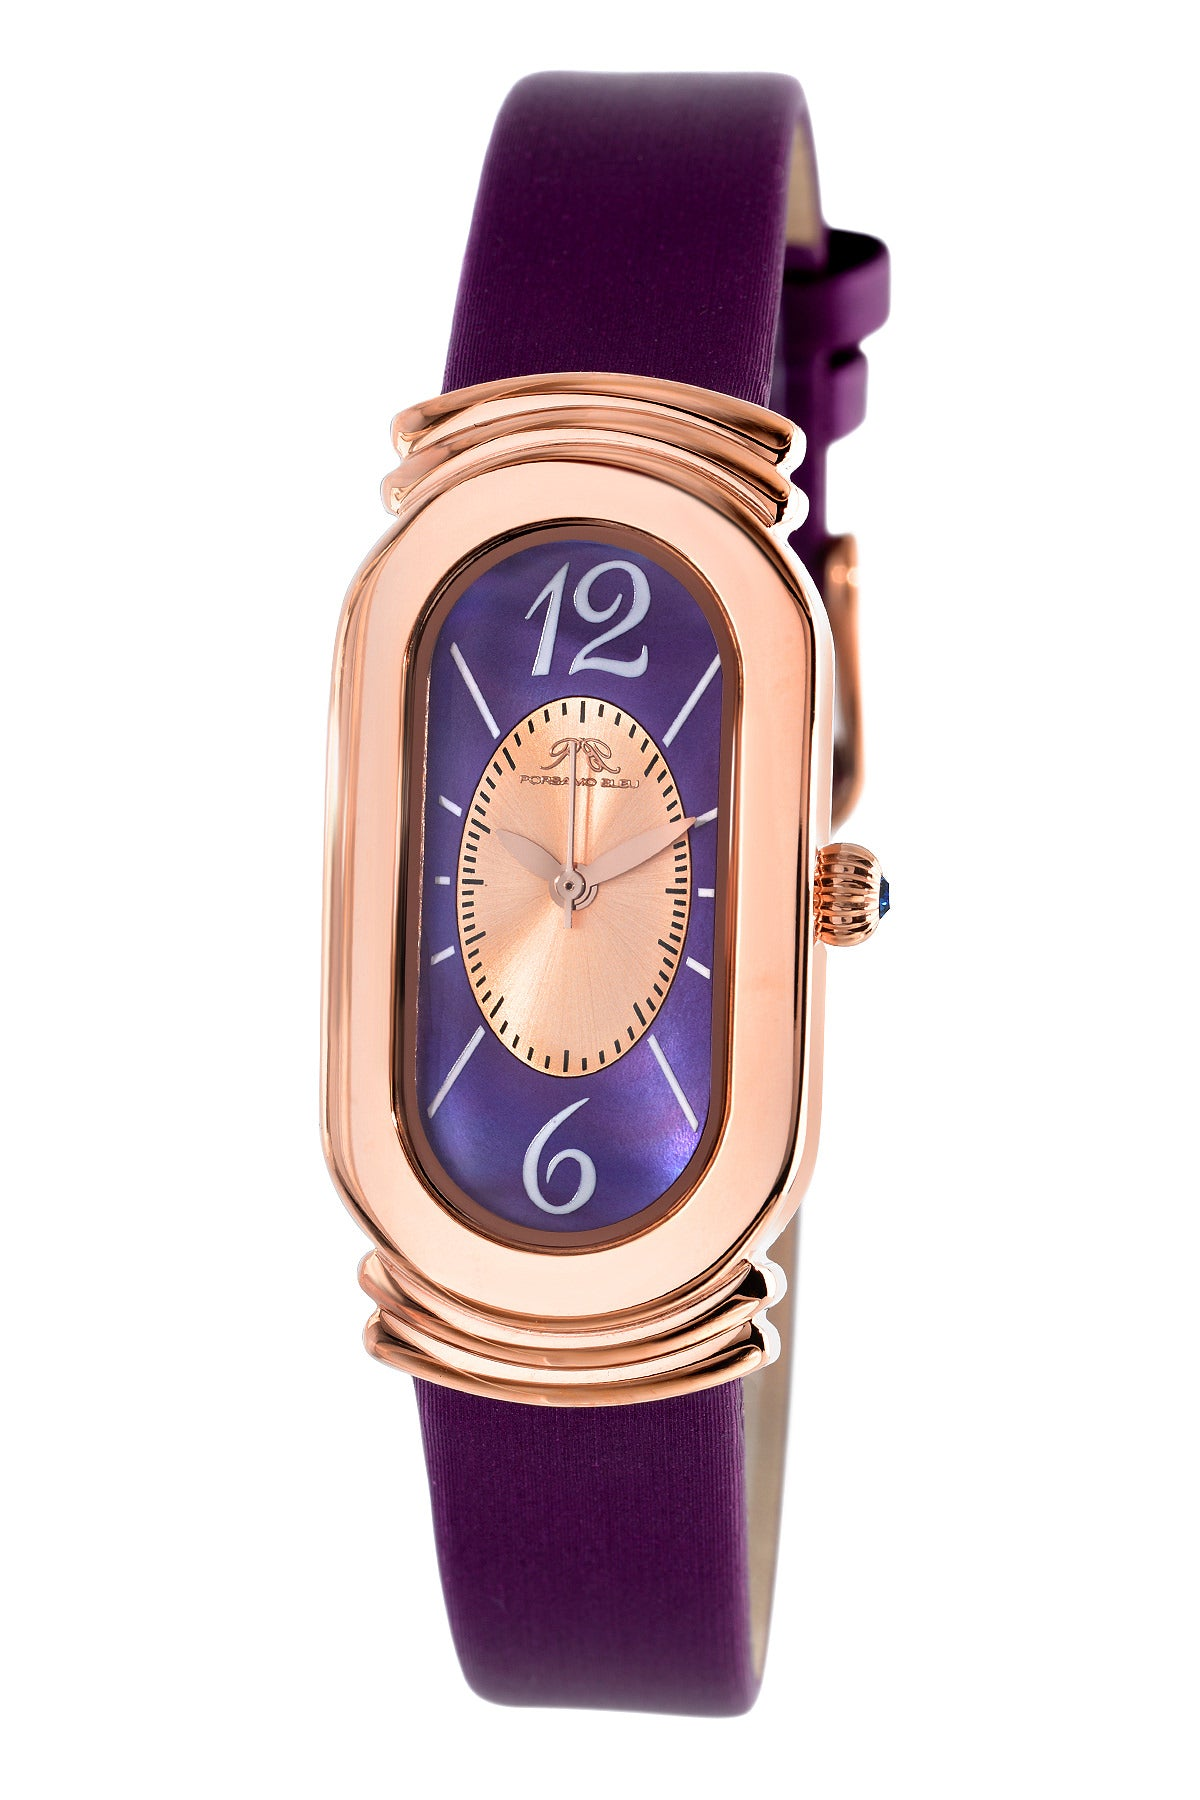 Porsamo Bleu Camille luxury women's silk covered leather watch, rose, purple 972BCAL